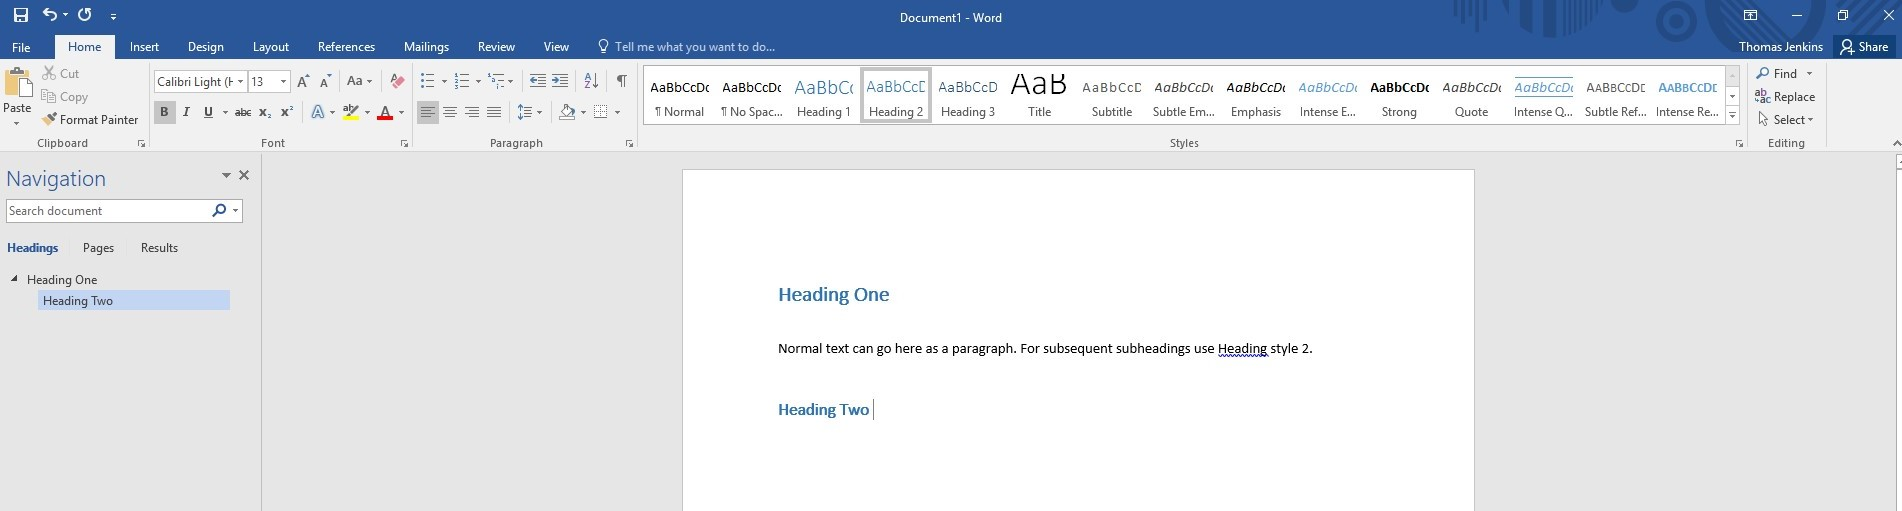 Screenshot demonstrating appearance of Headings in Word and where on the tool bar they can be selected from.